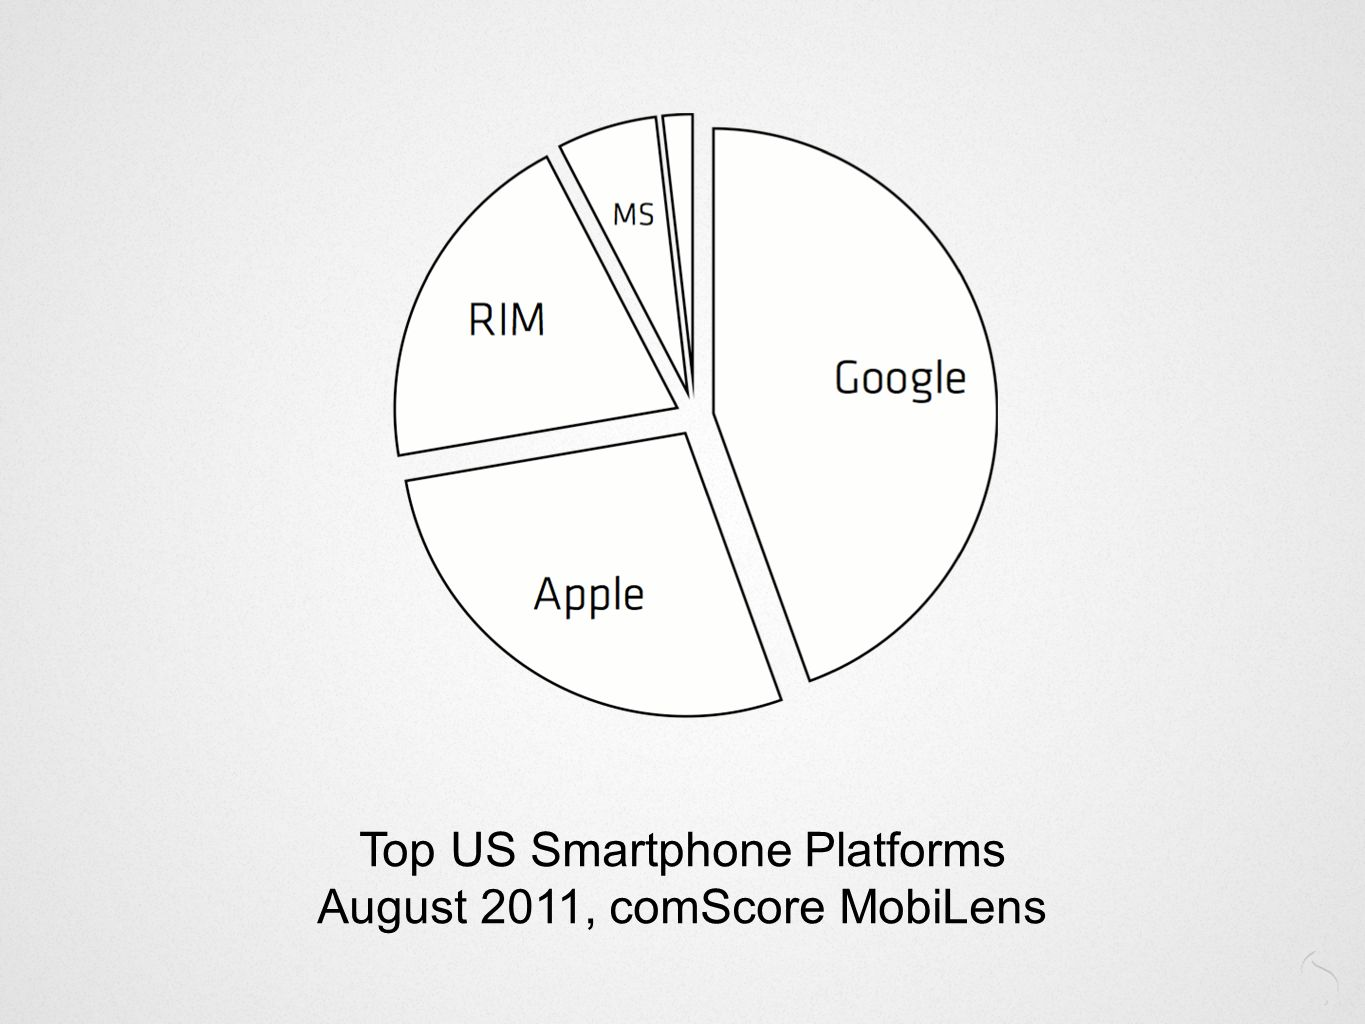 Top US Smartphone Platforms August 2011, comScore MobiLens